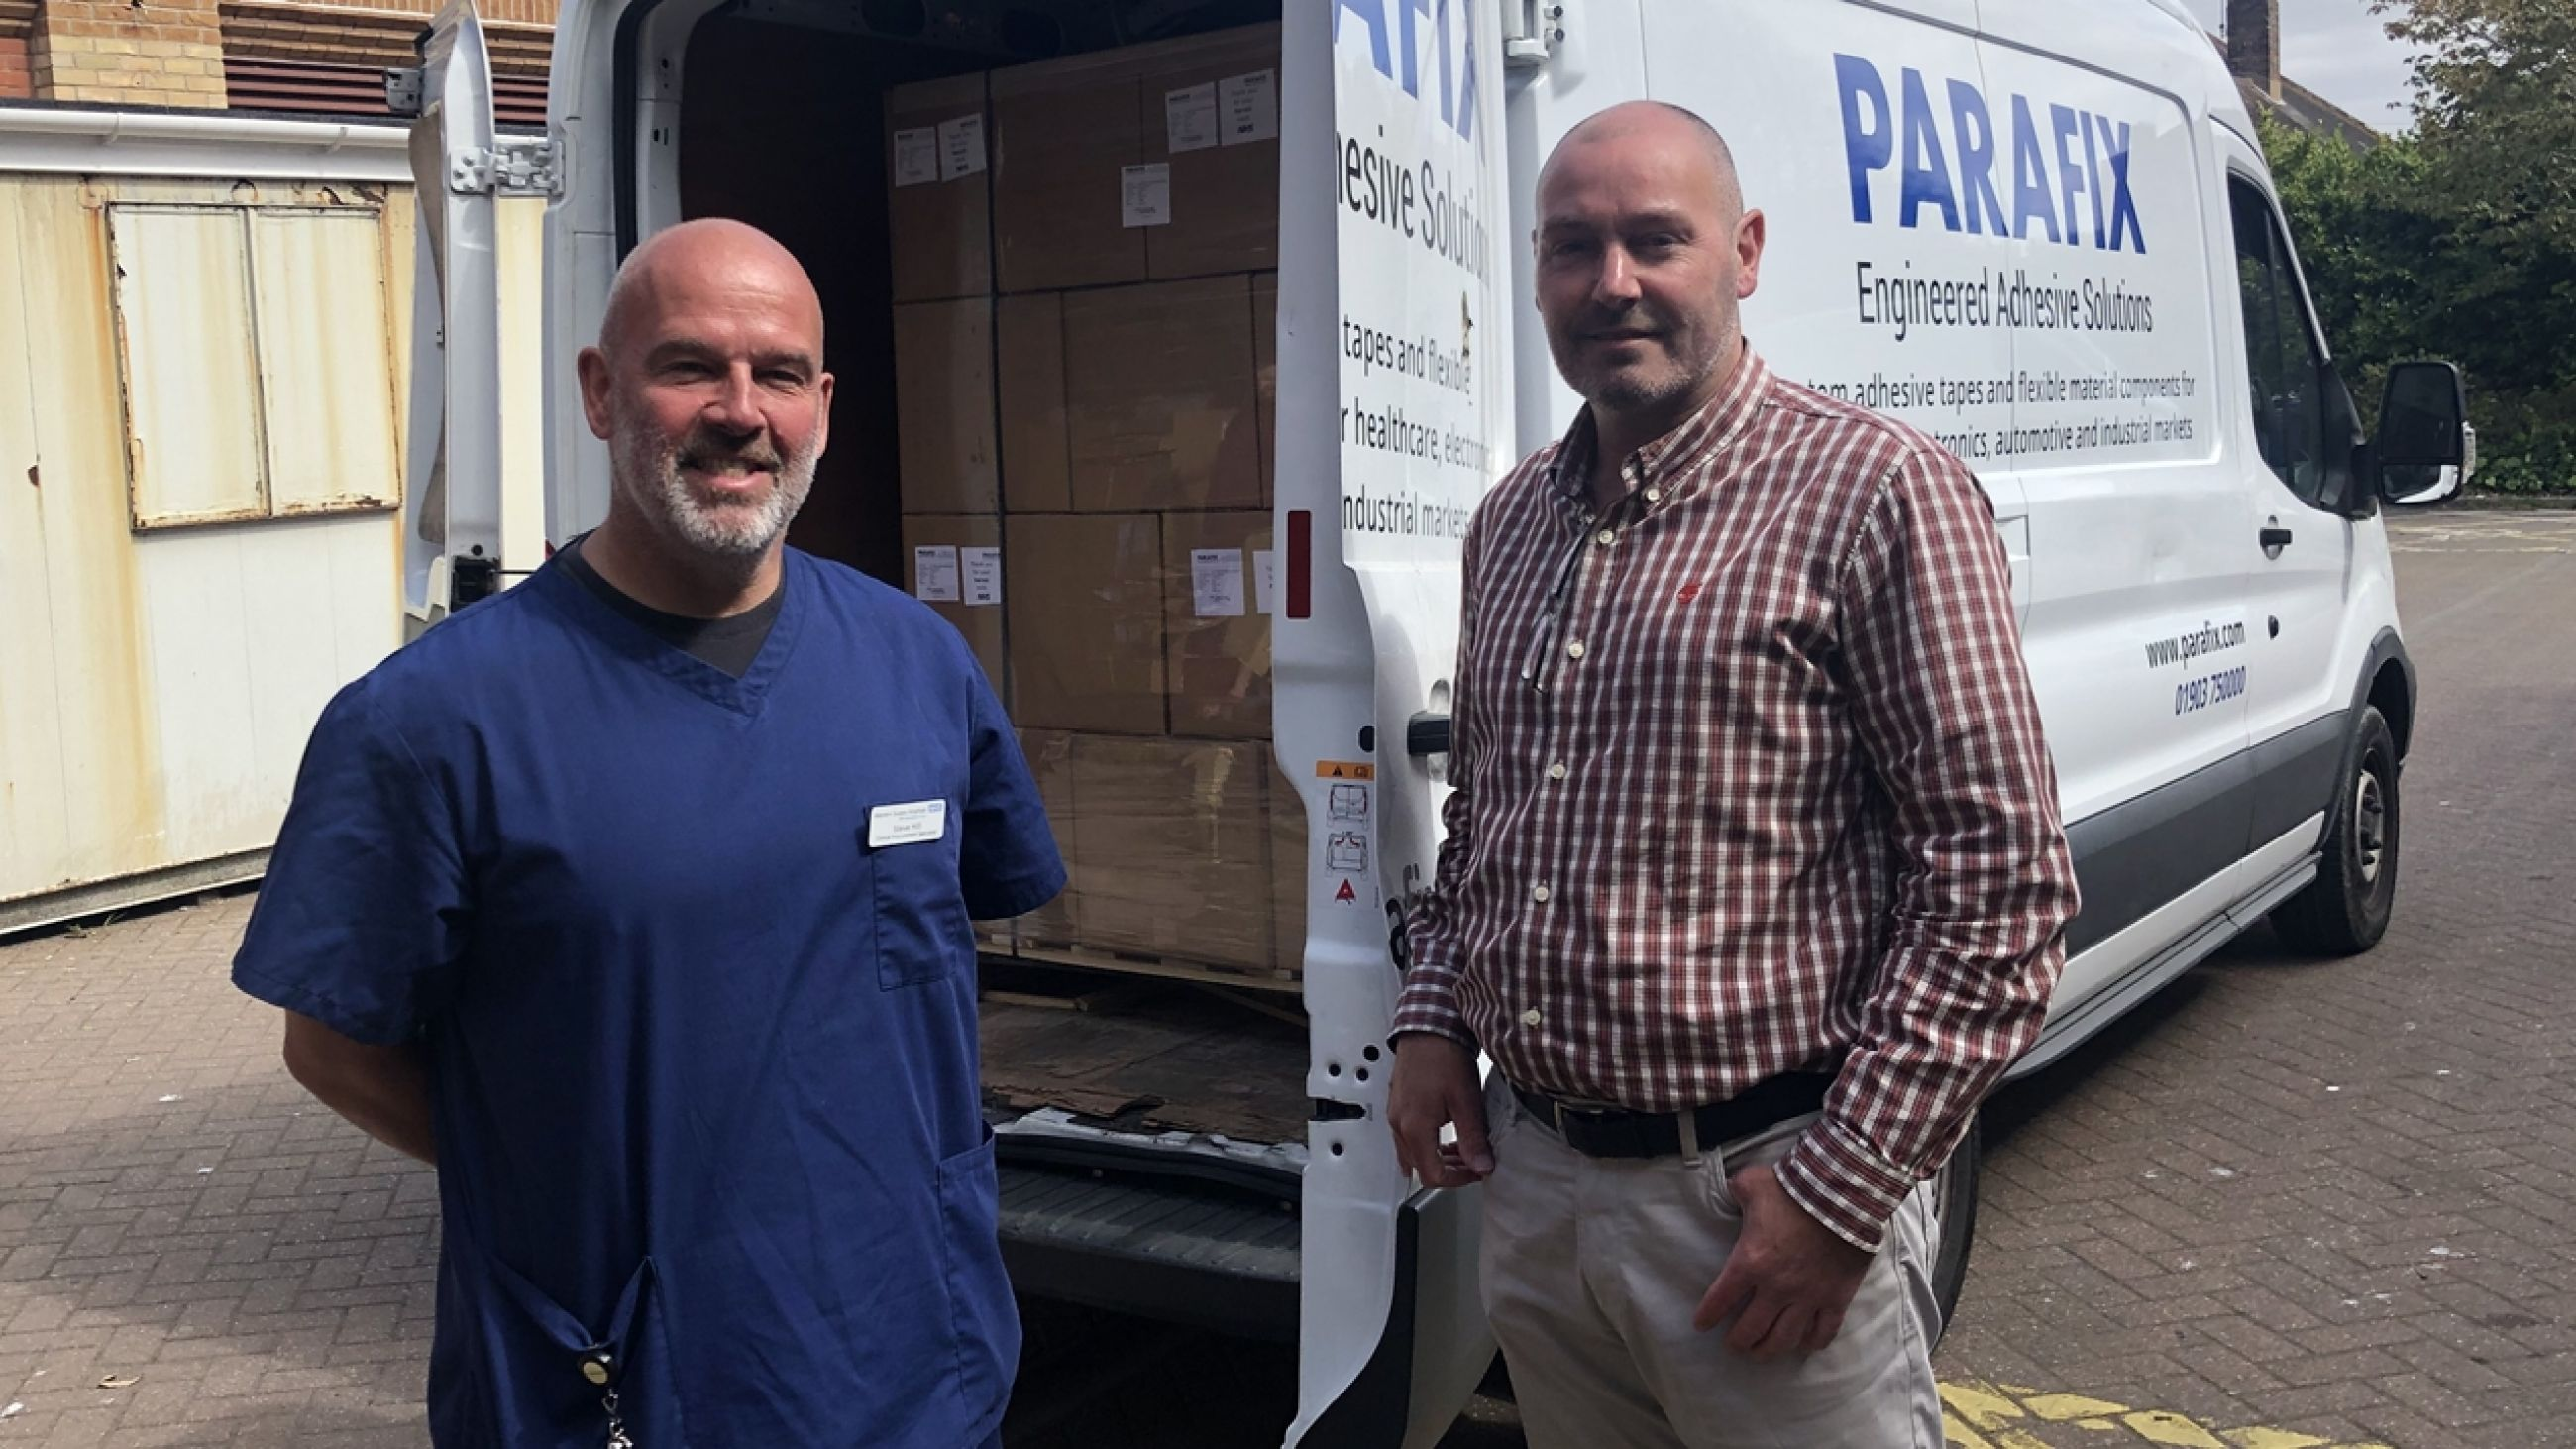 Parafix Stands Up to COVID-19